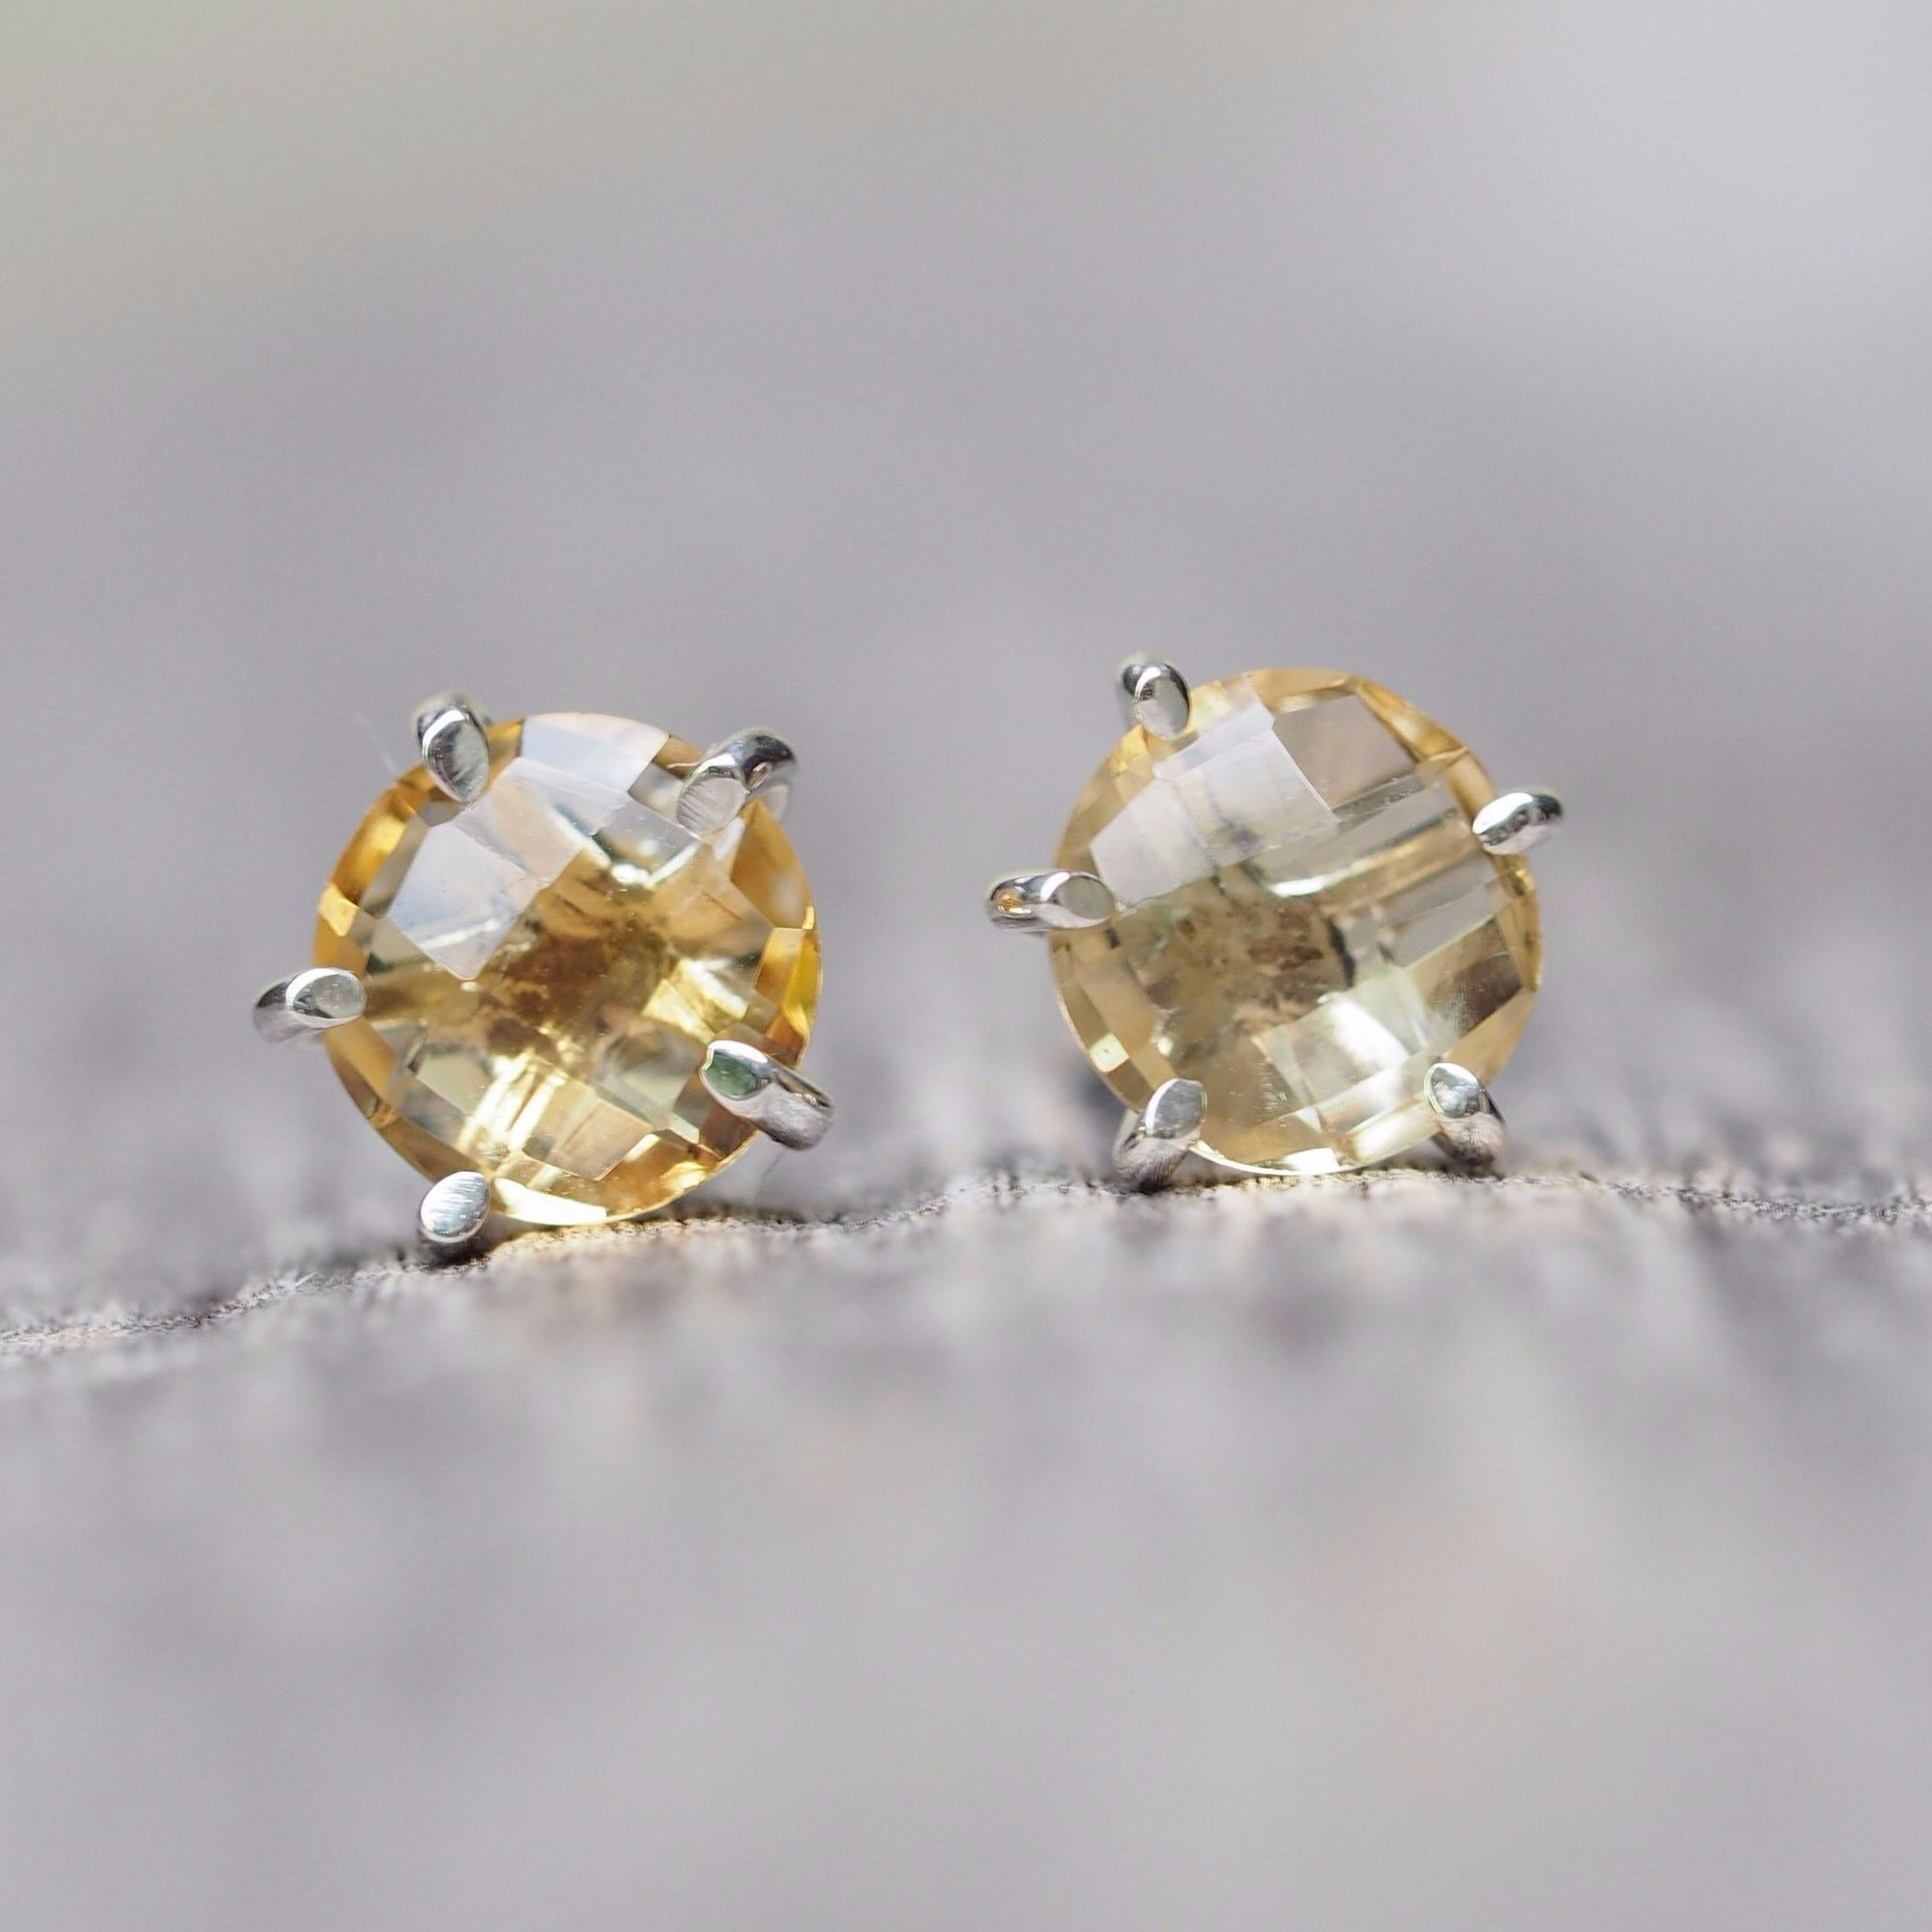 Checkerboard Citrine Stud Earrings - Gardens of the Sun Jewelry